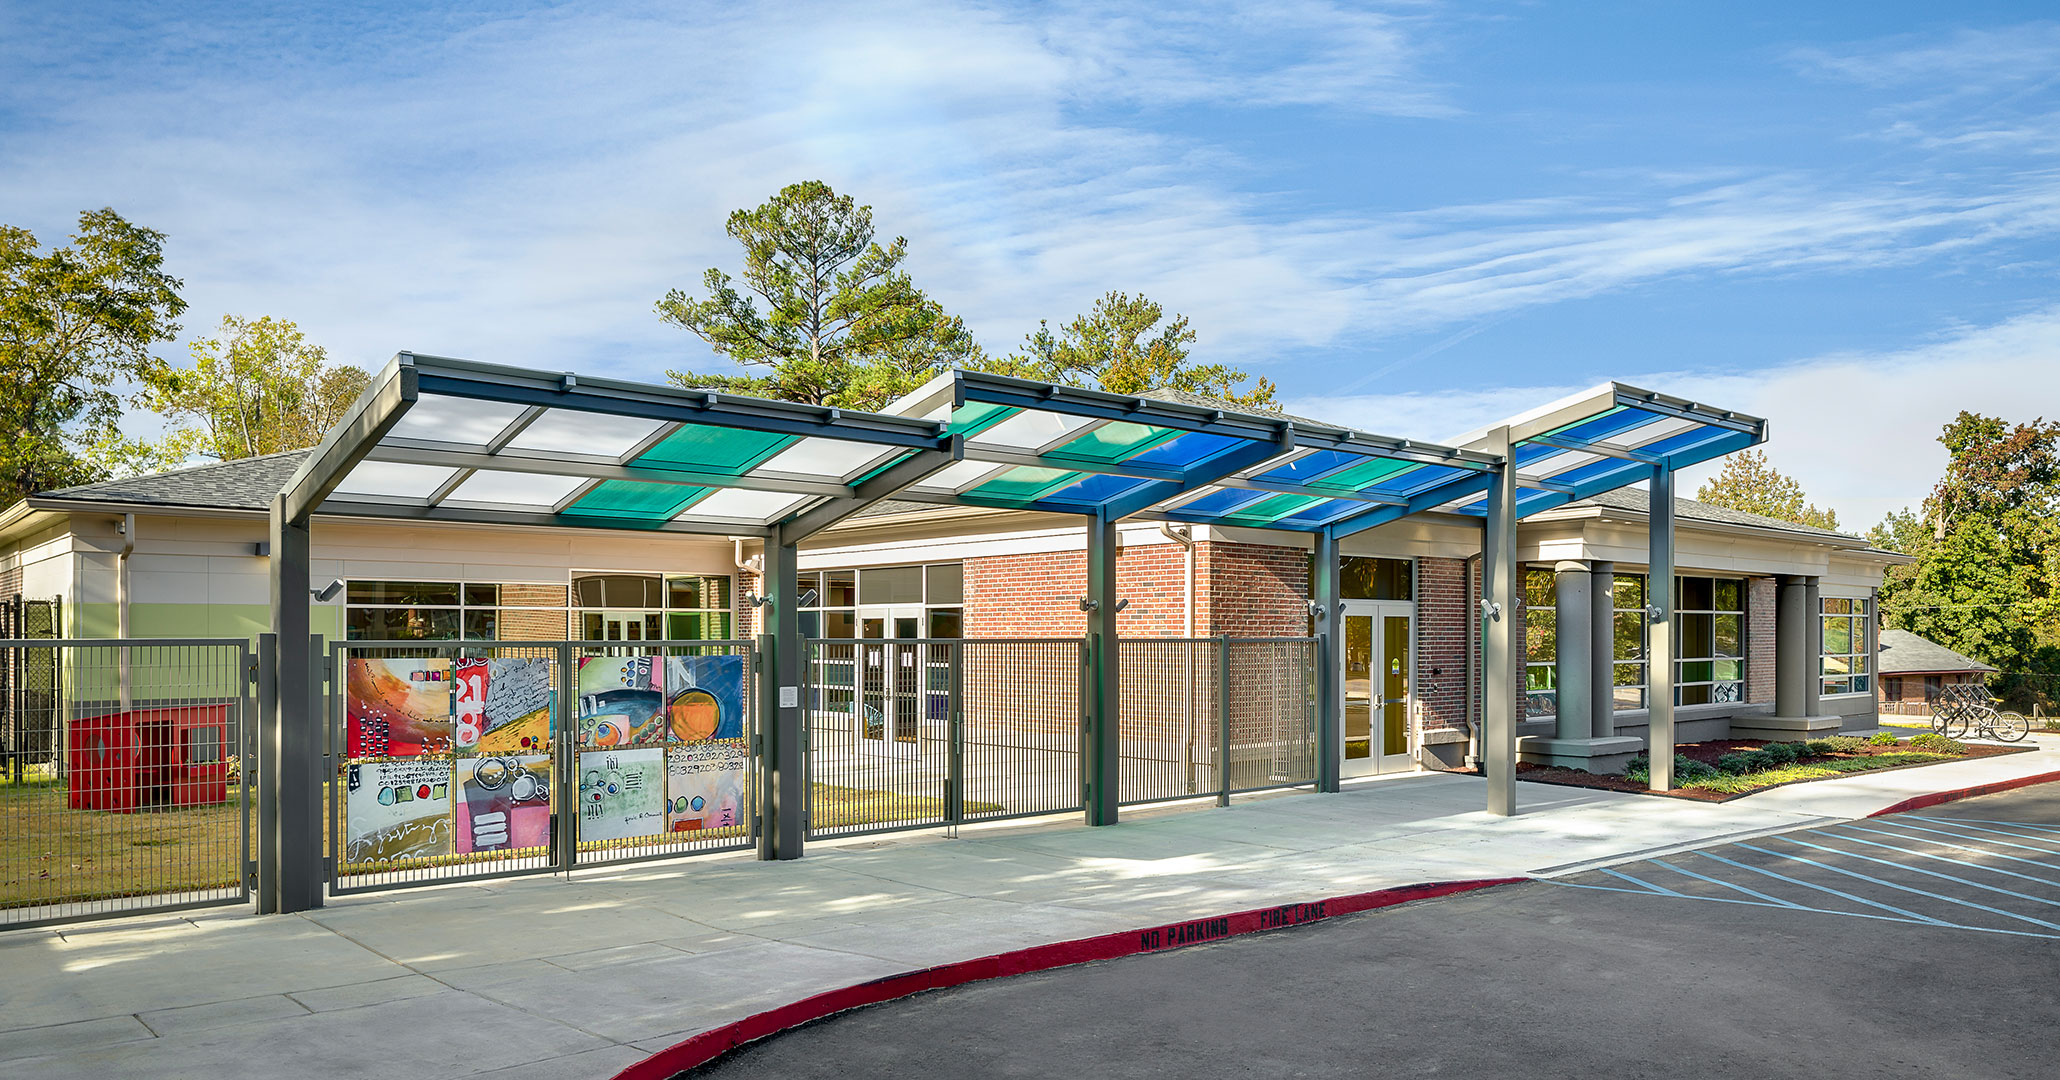 Richland County Library worked with Boudreaux to design modern exterior elements for Richland North Main Library.